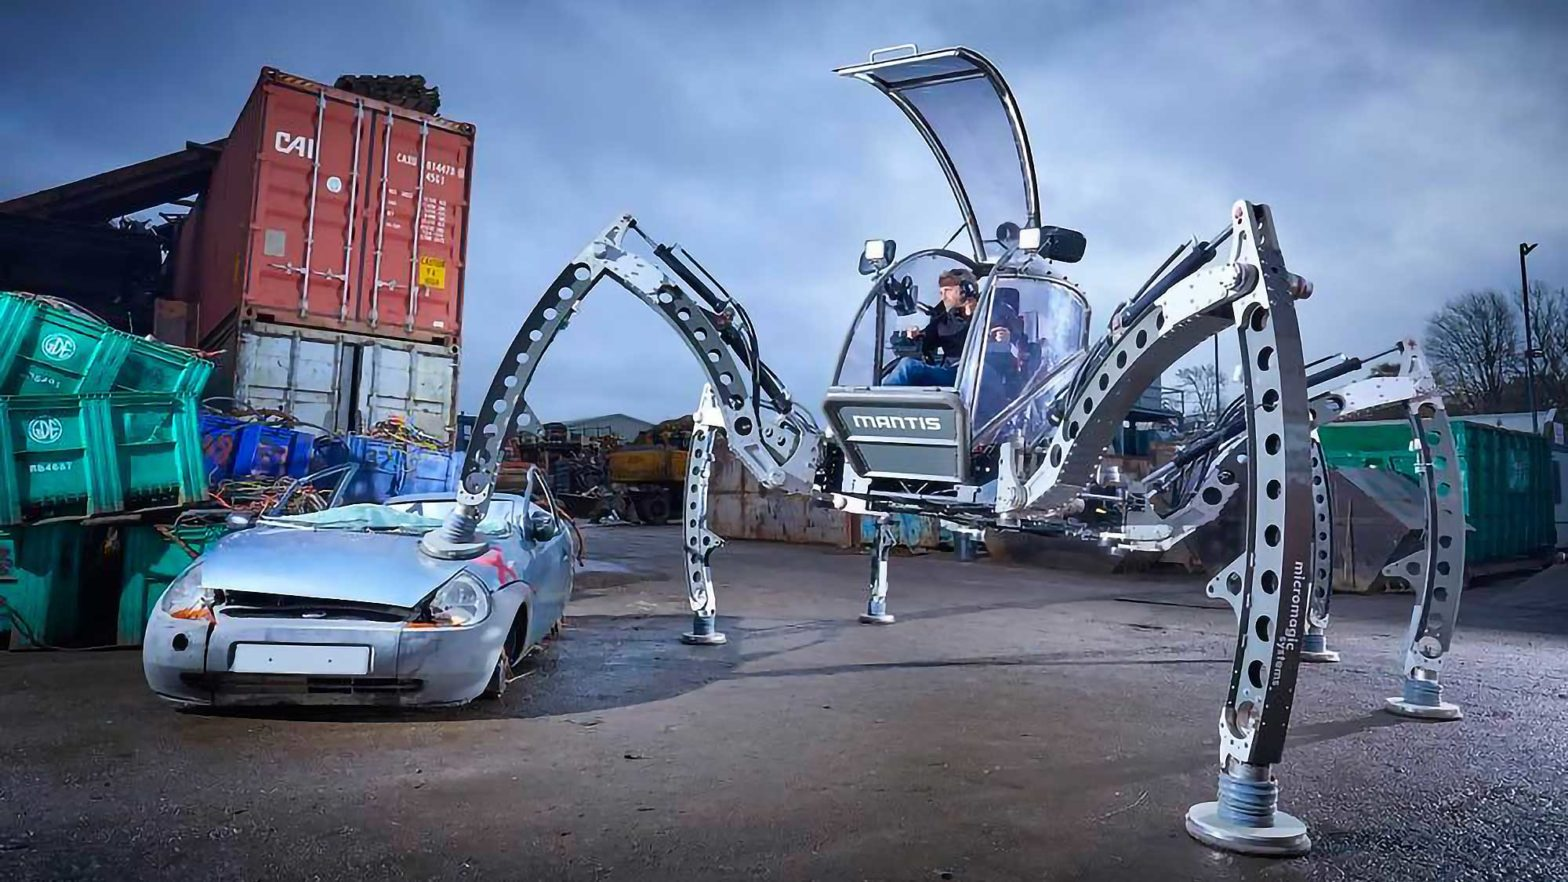 Drivable Spider Robot by Matt Denton